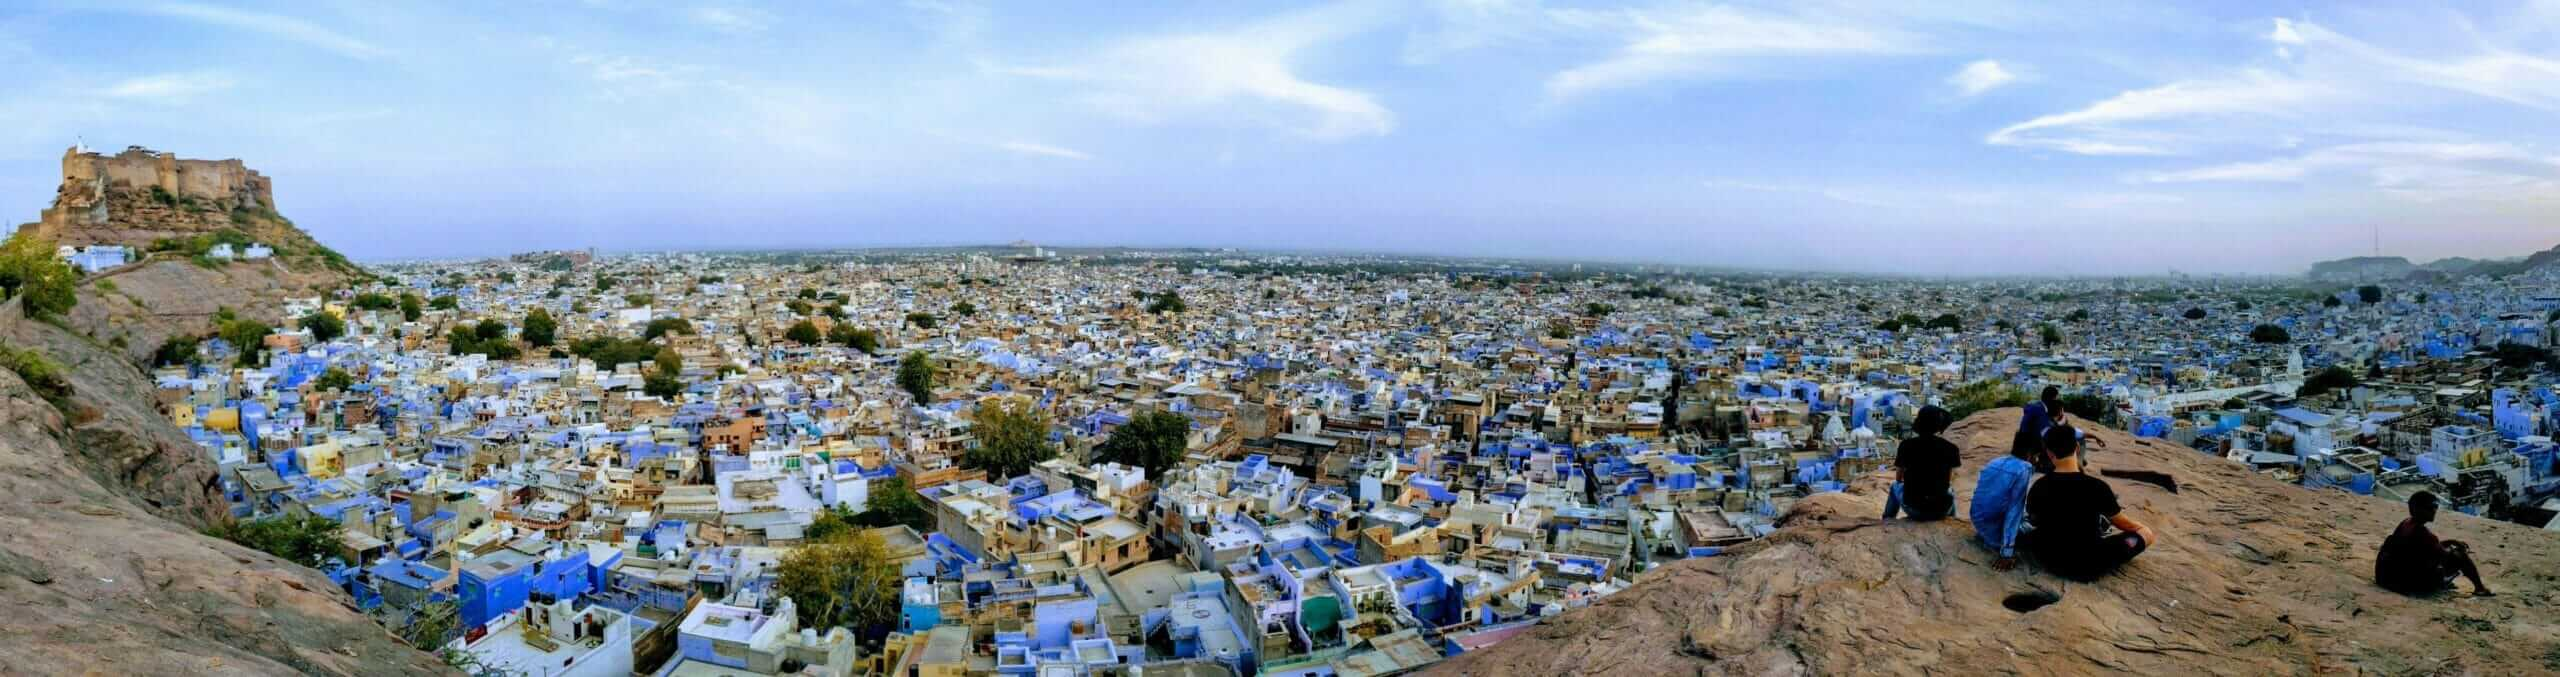 Panorama of Jodhpur from Sunset Rock showing a multitude of blue buildings